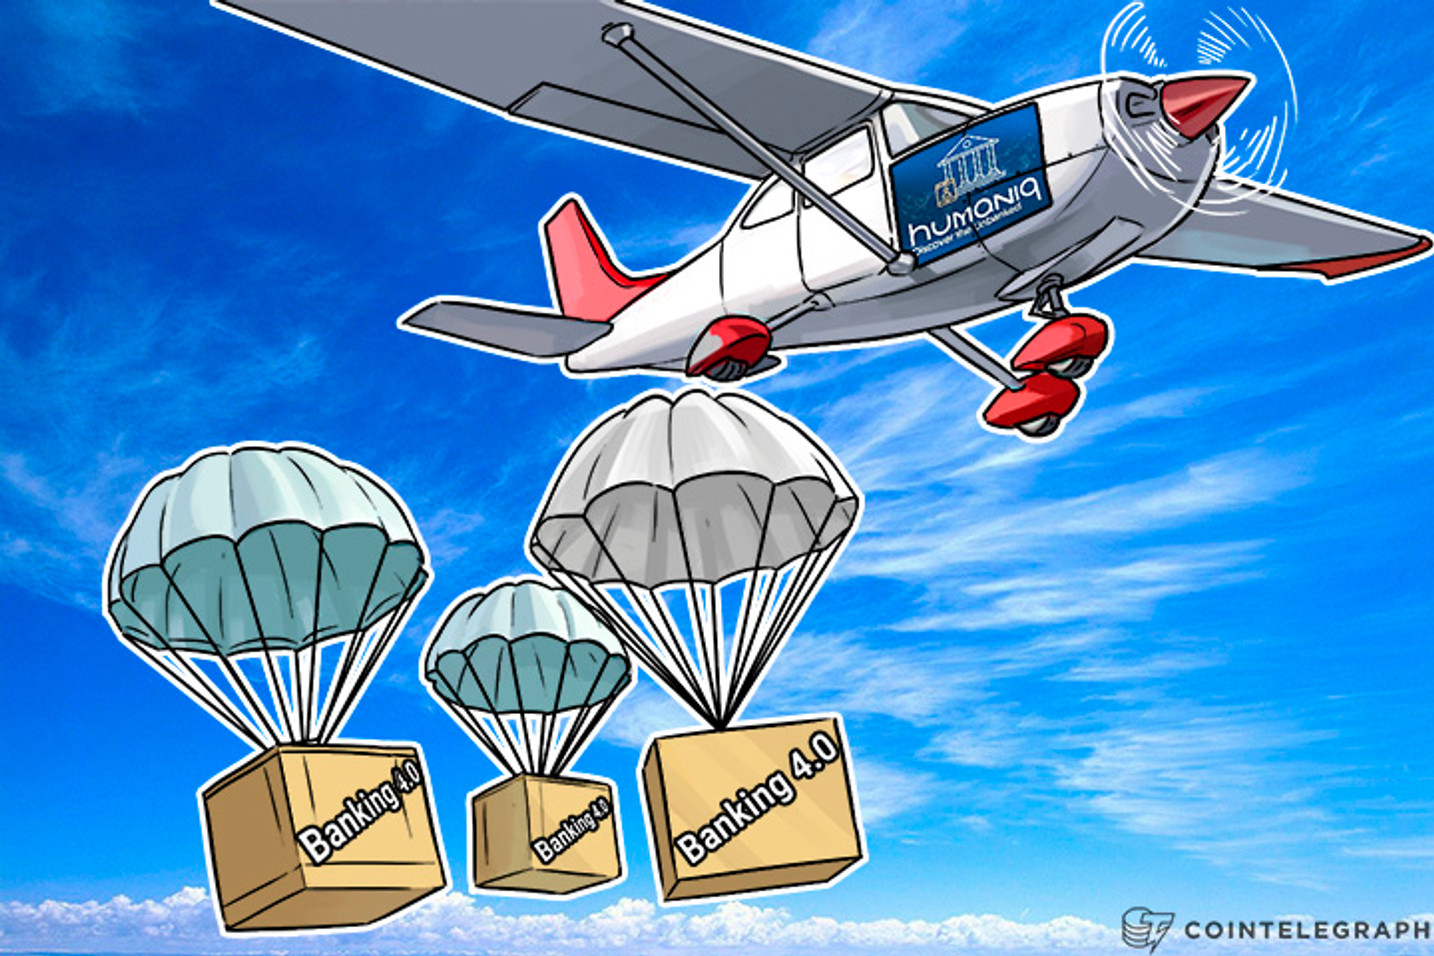 Ethereum-Based Humaniq To Deliver Banking 4.0 to 2 Bln Unbanked